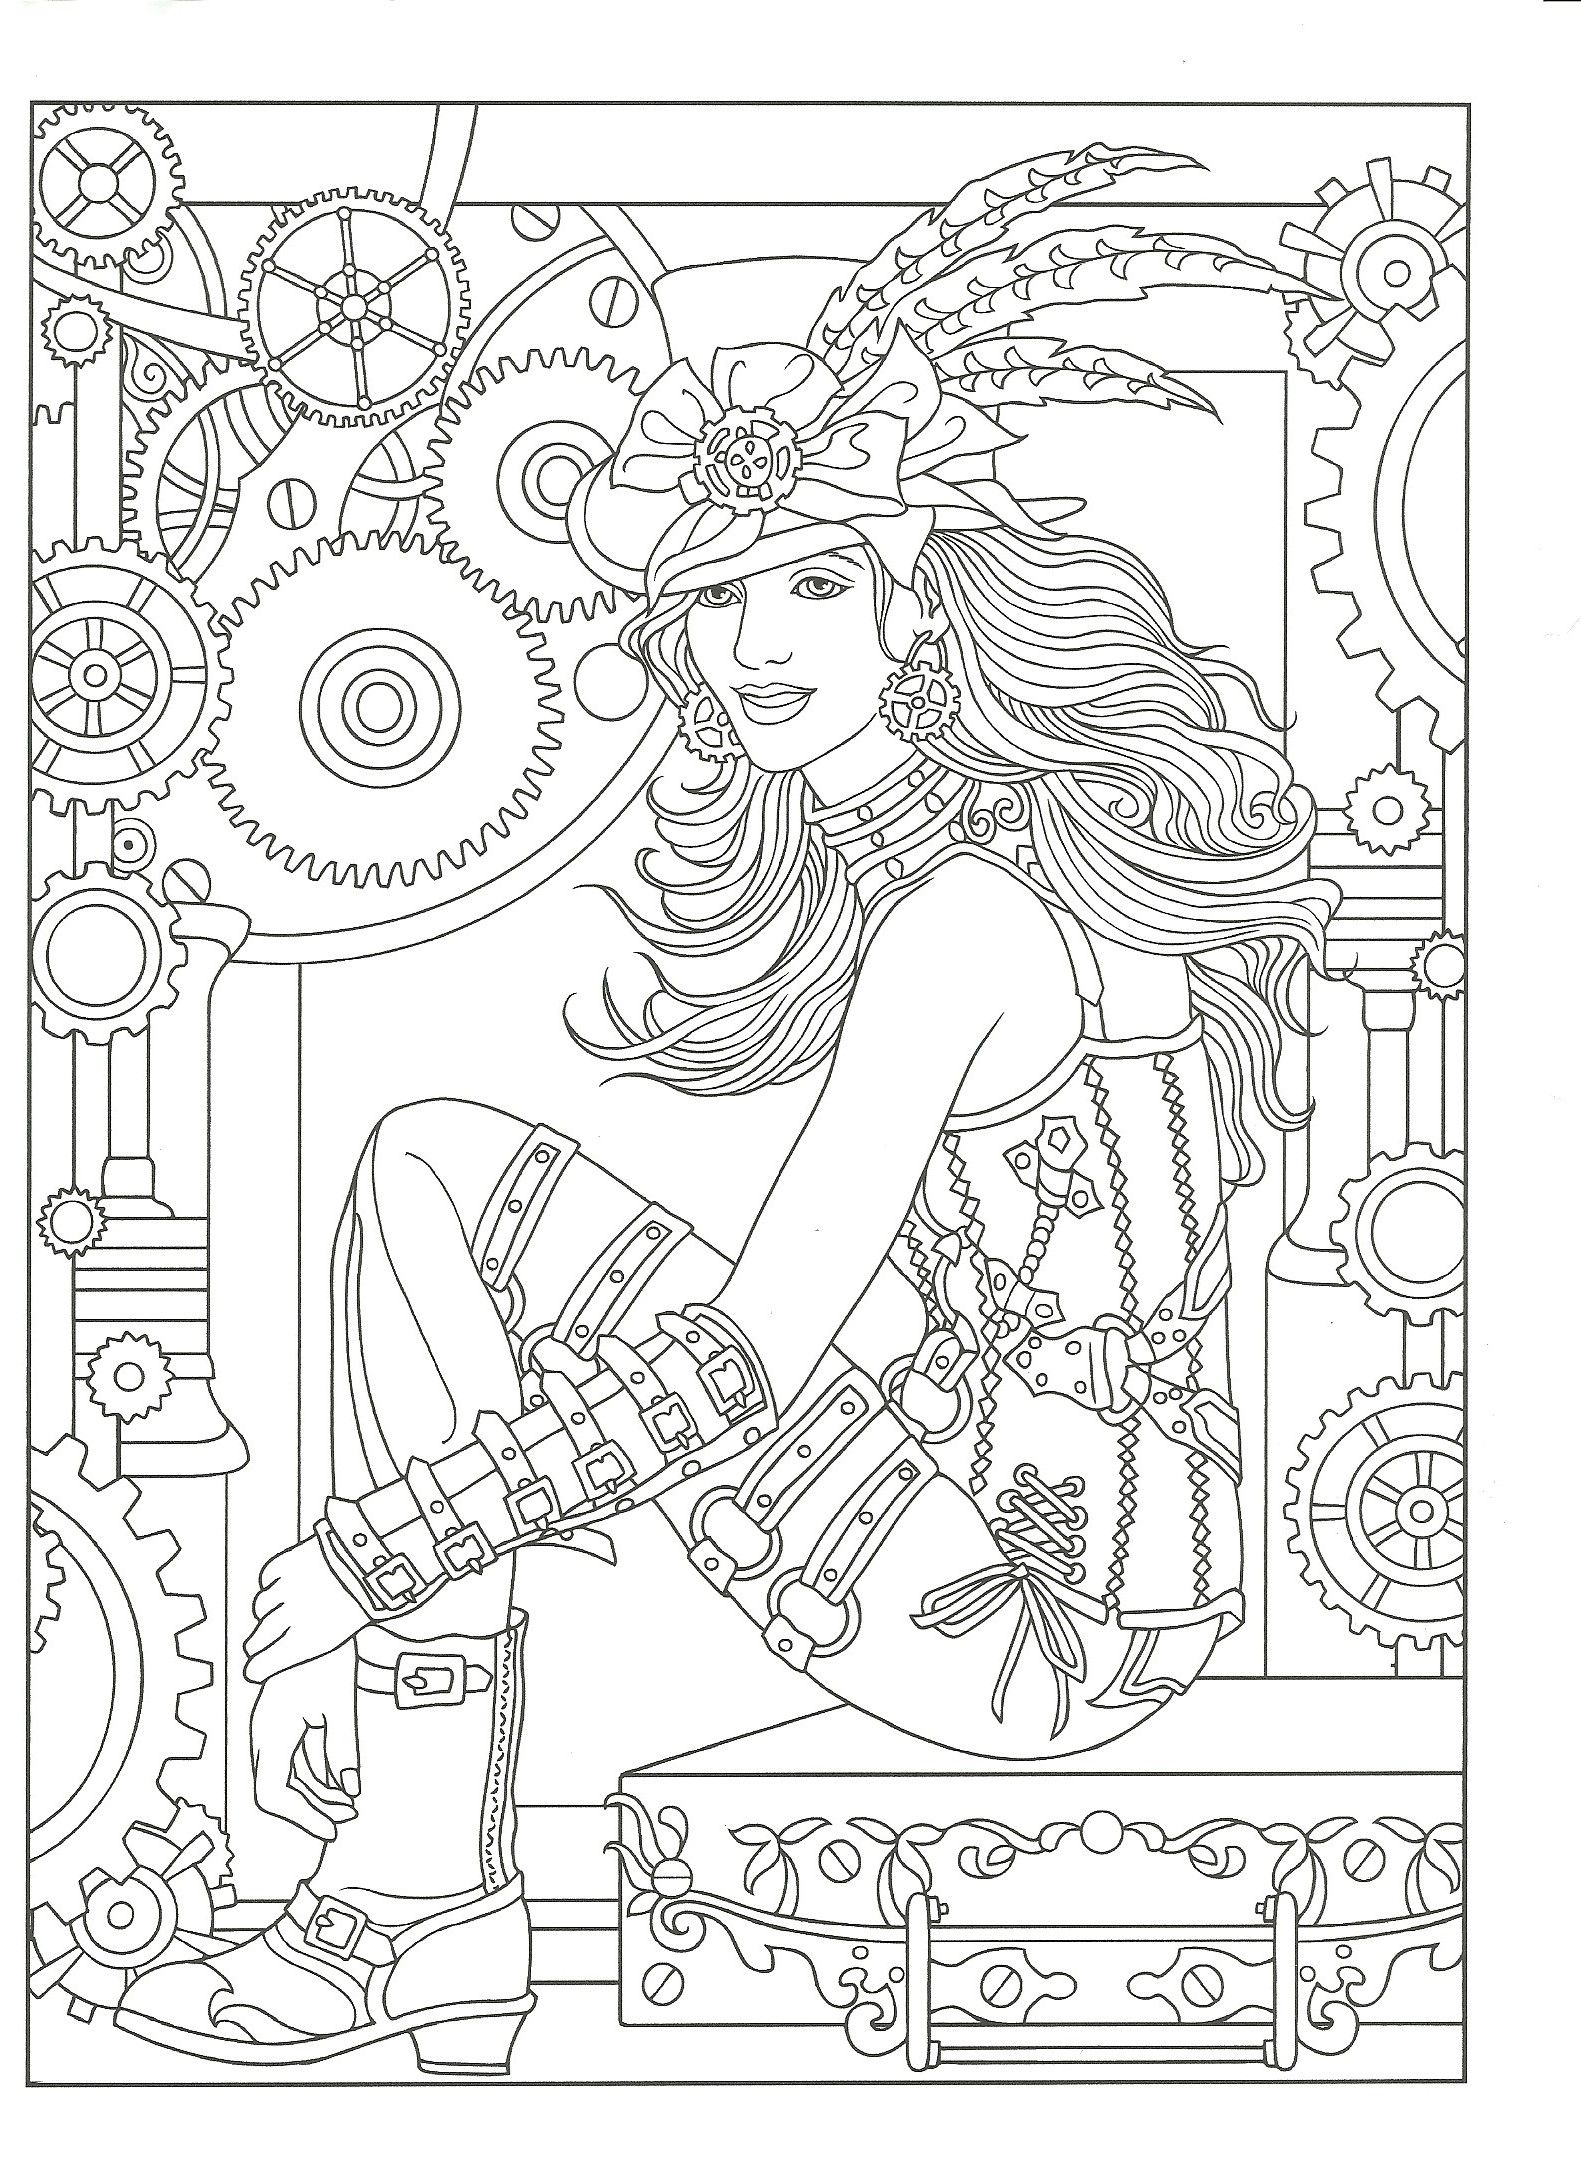 Adult Coloring Page From Creative Haven Steampunk Fashions Book Dover Publications Artwork By